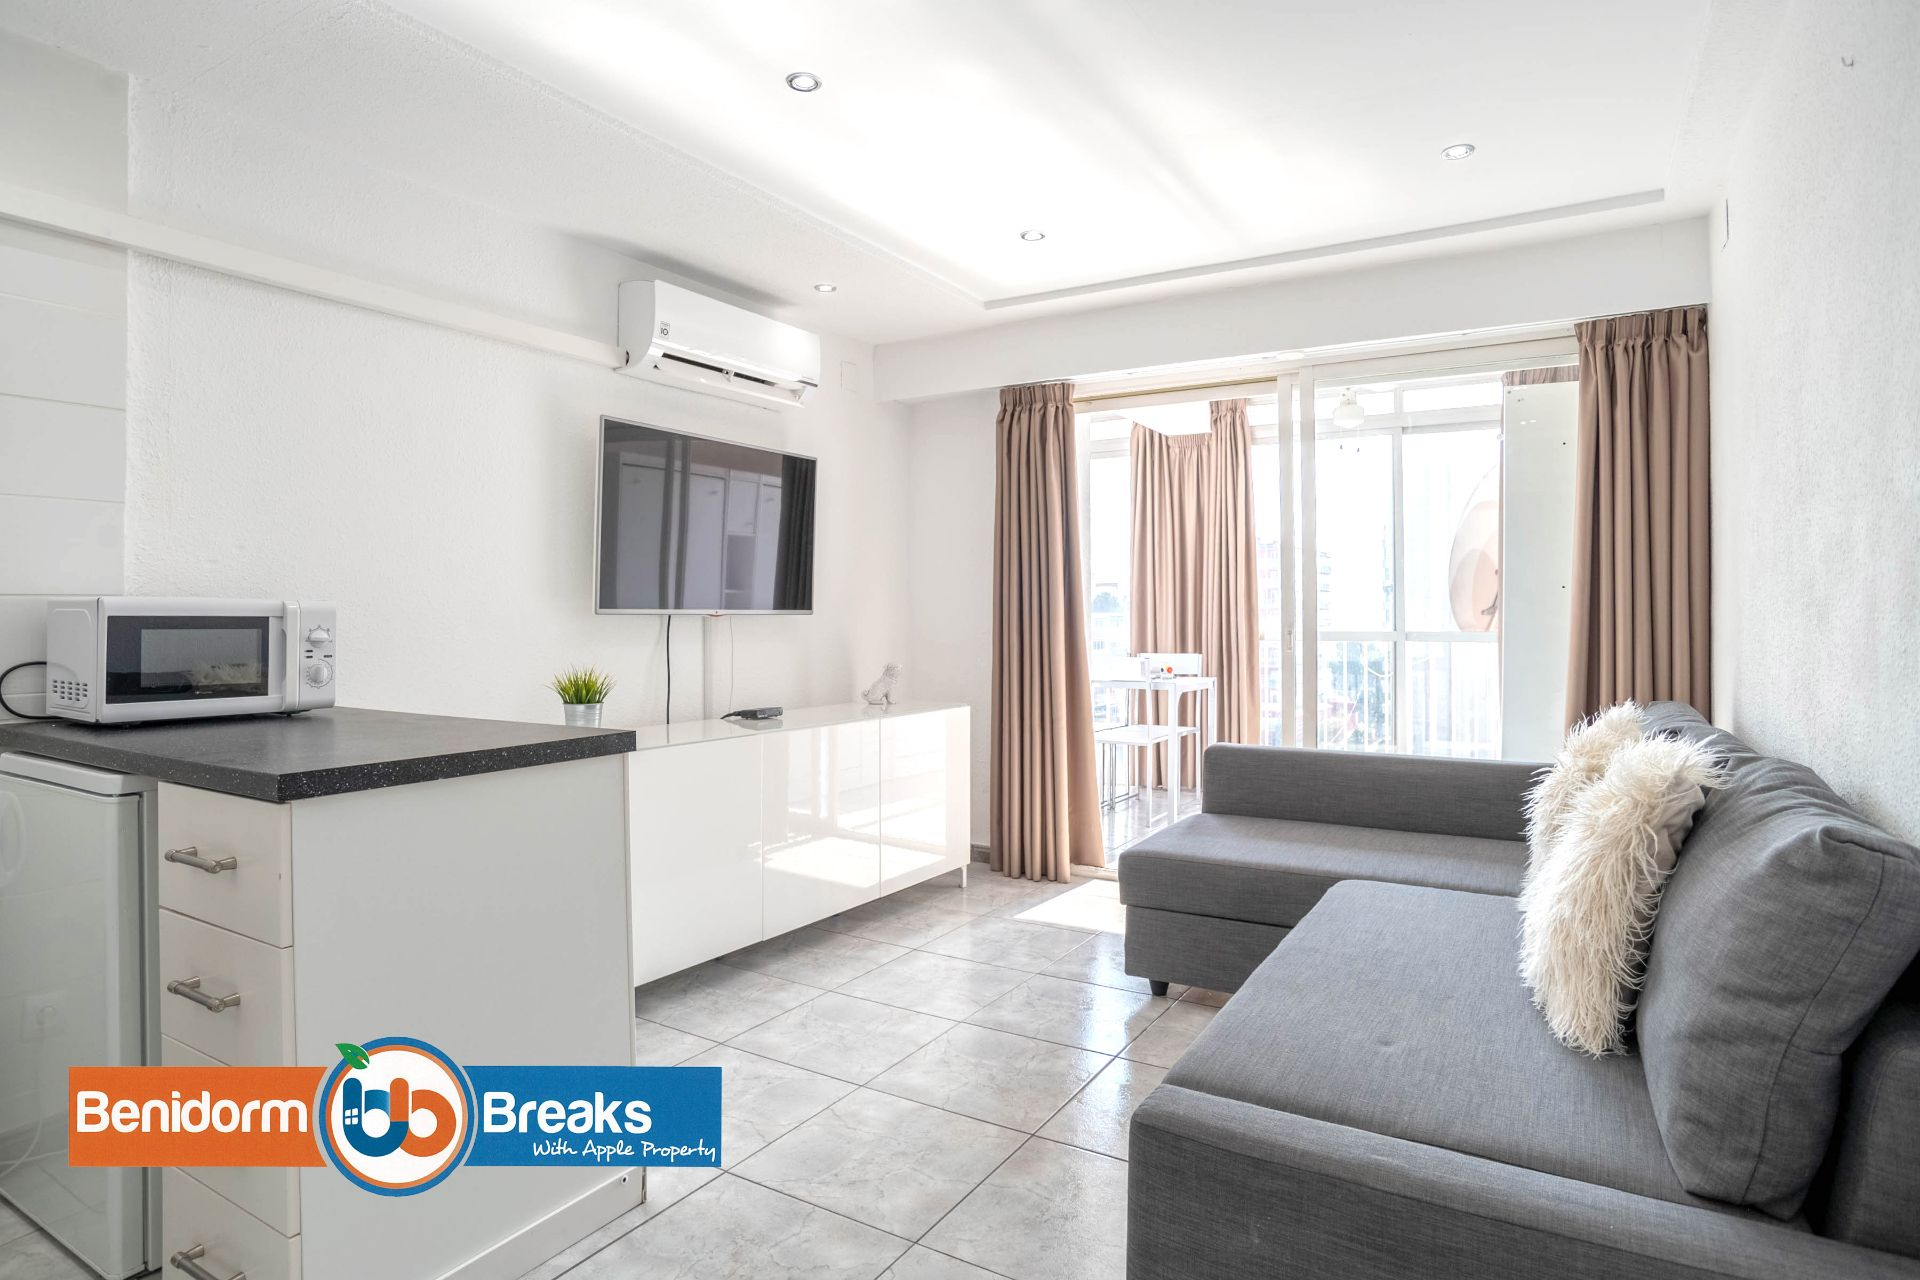 Apartment in Benidorm, holiday rentals